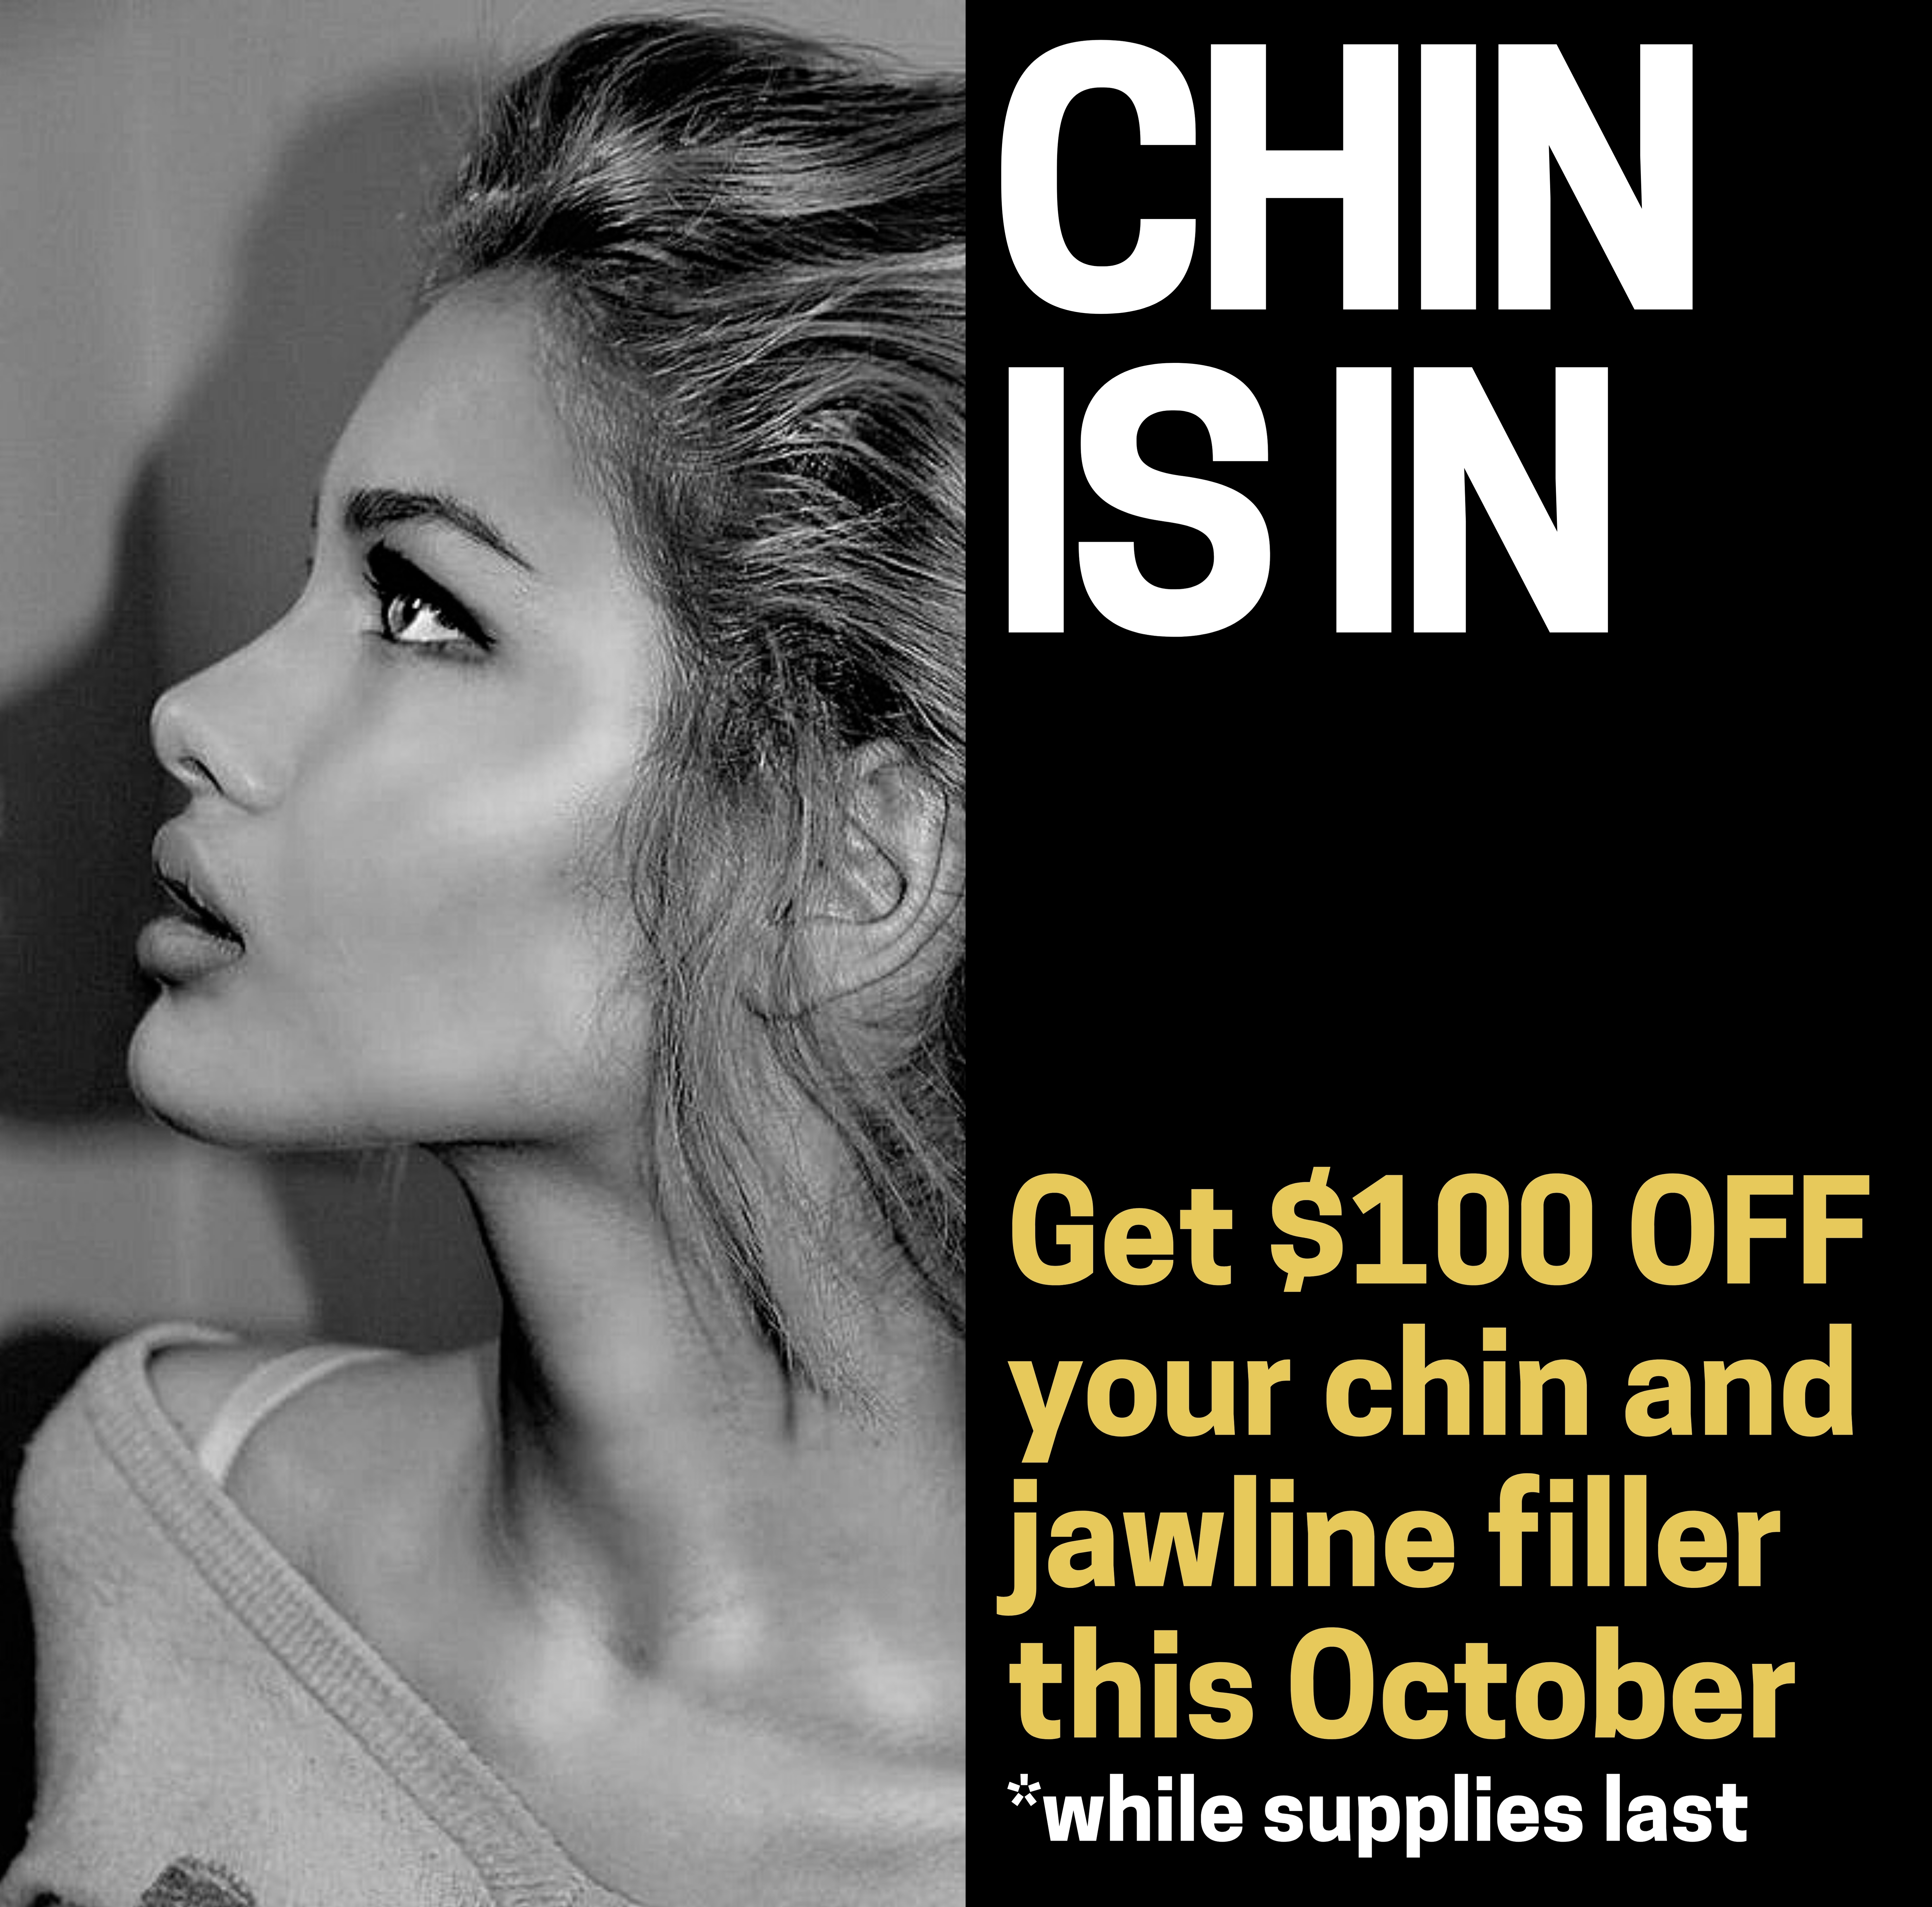 $100 OFF Chin & Jawline Filler EXTENDED TO NOVEMBER 30TH!